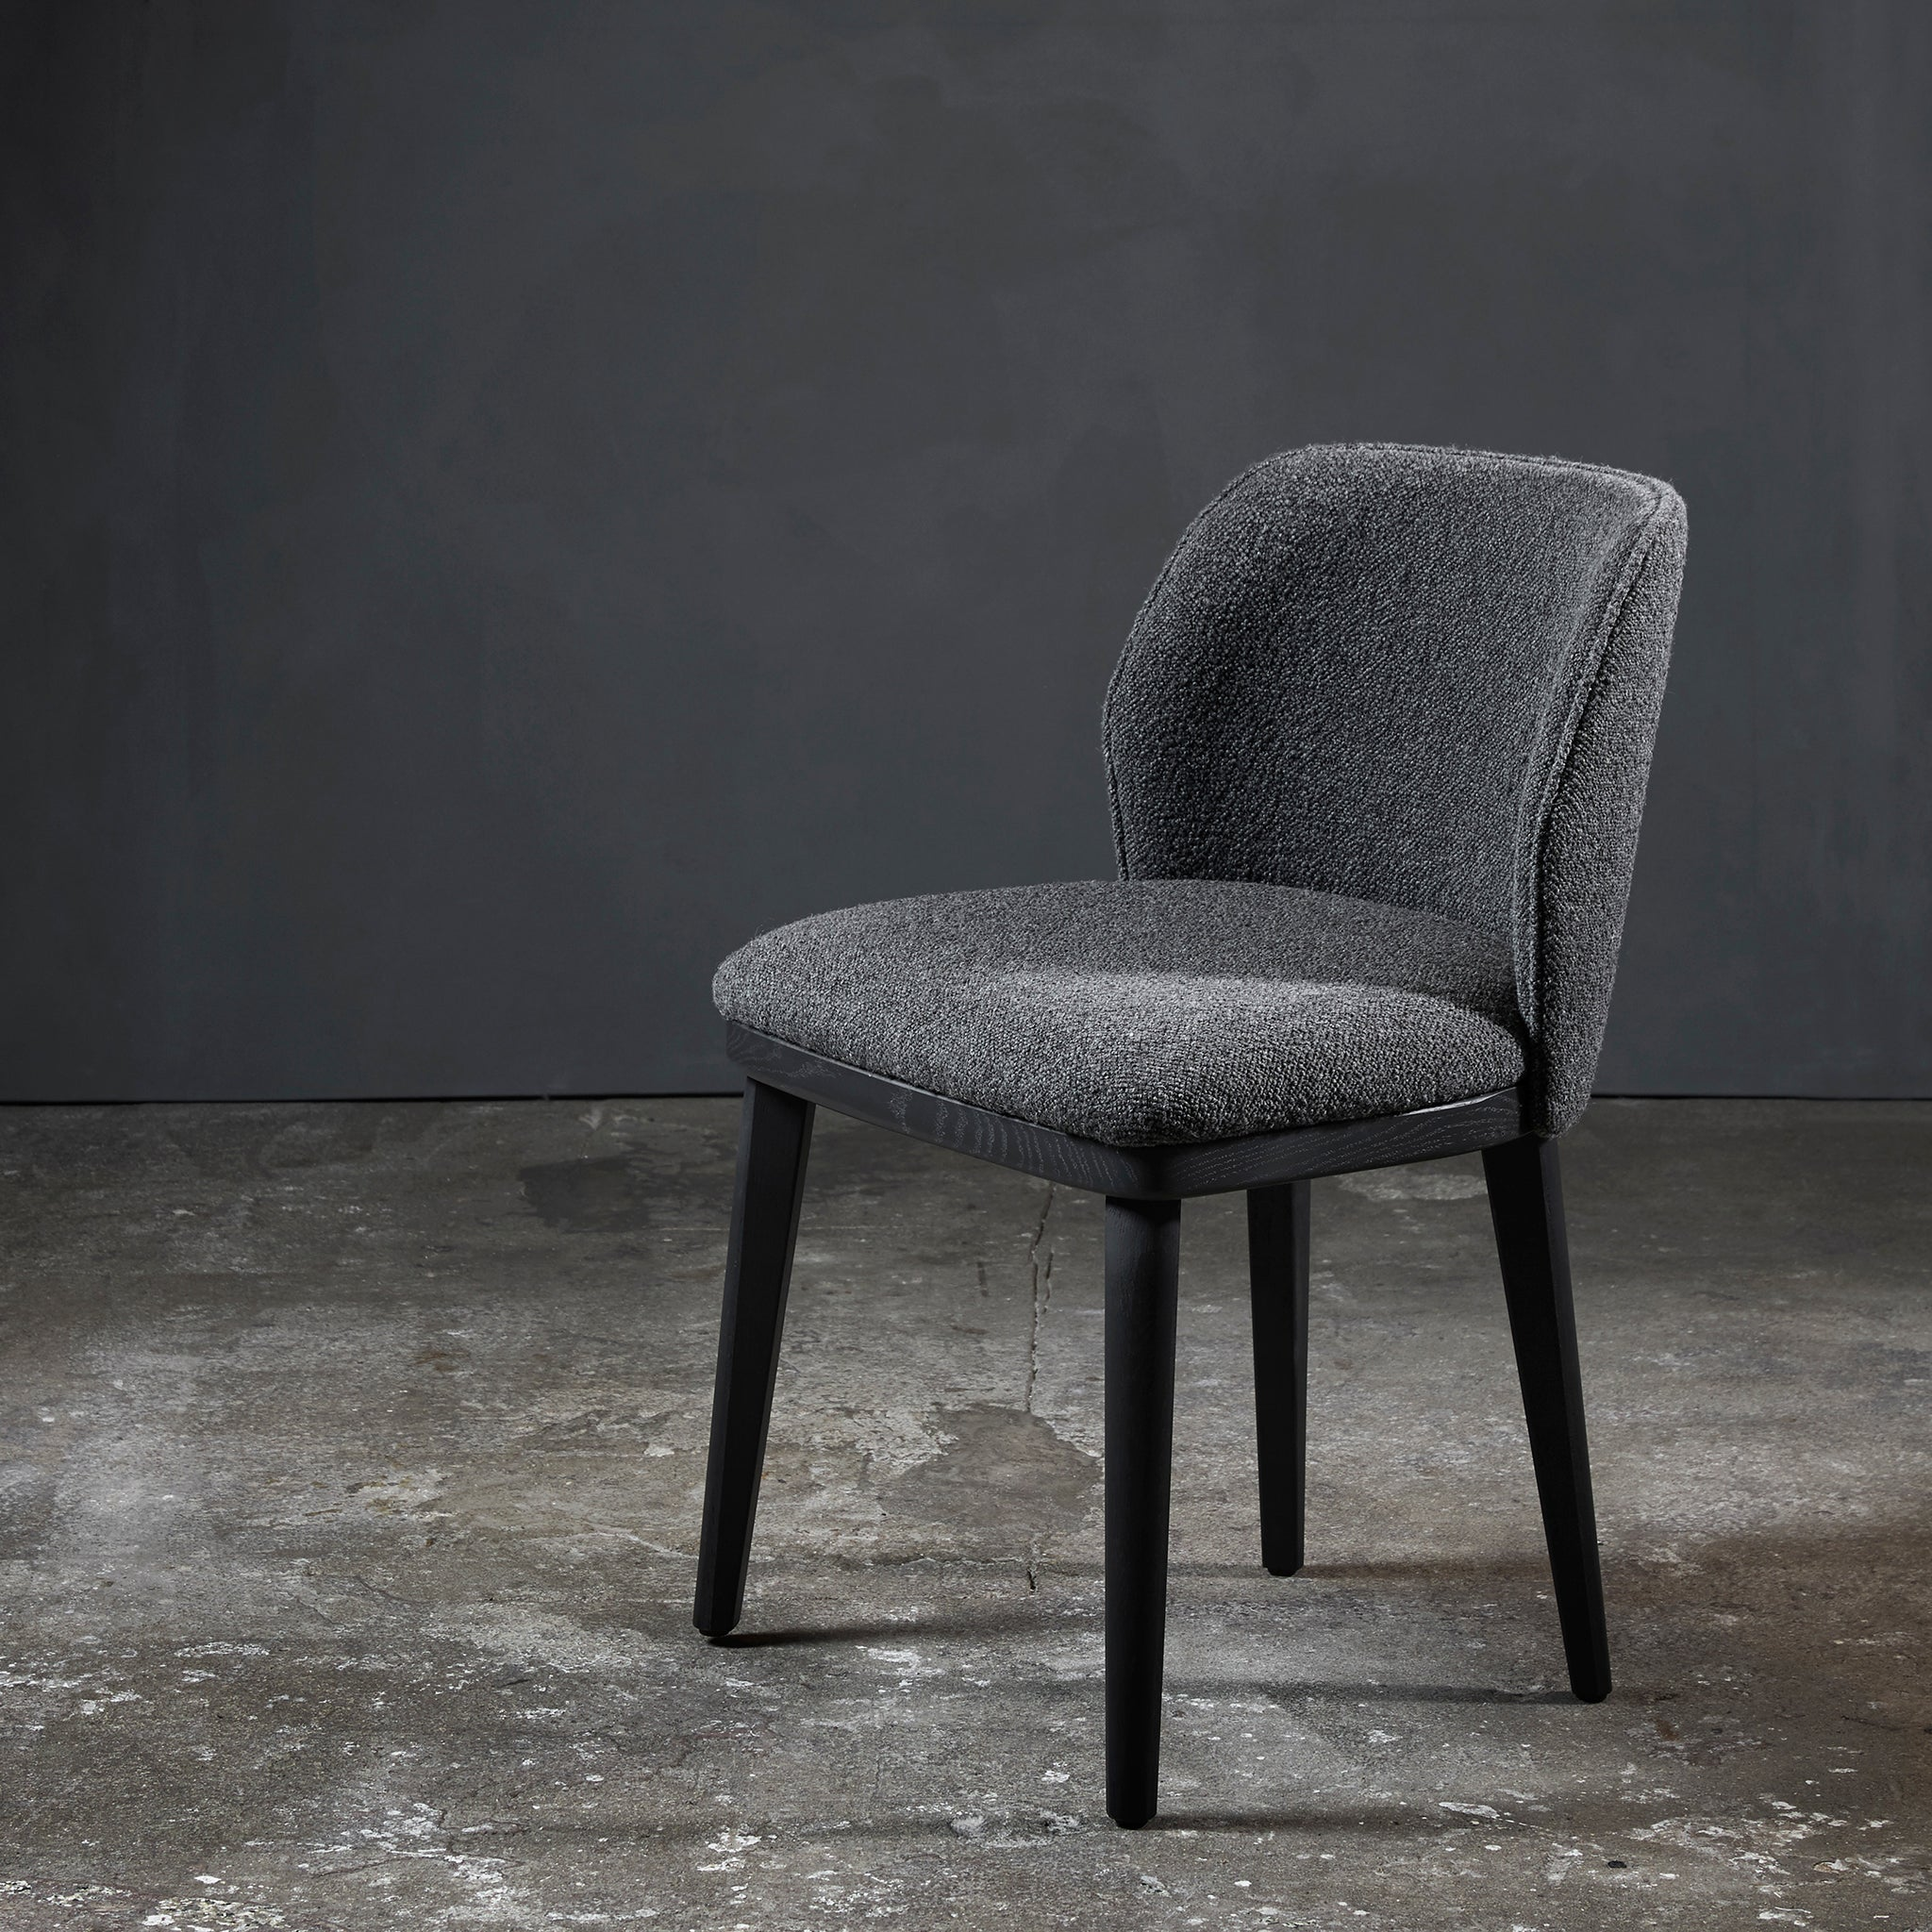 LUM Dining Chair Seating Christophe Delcourt Designer Furniture Sku: 765-120-10018